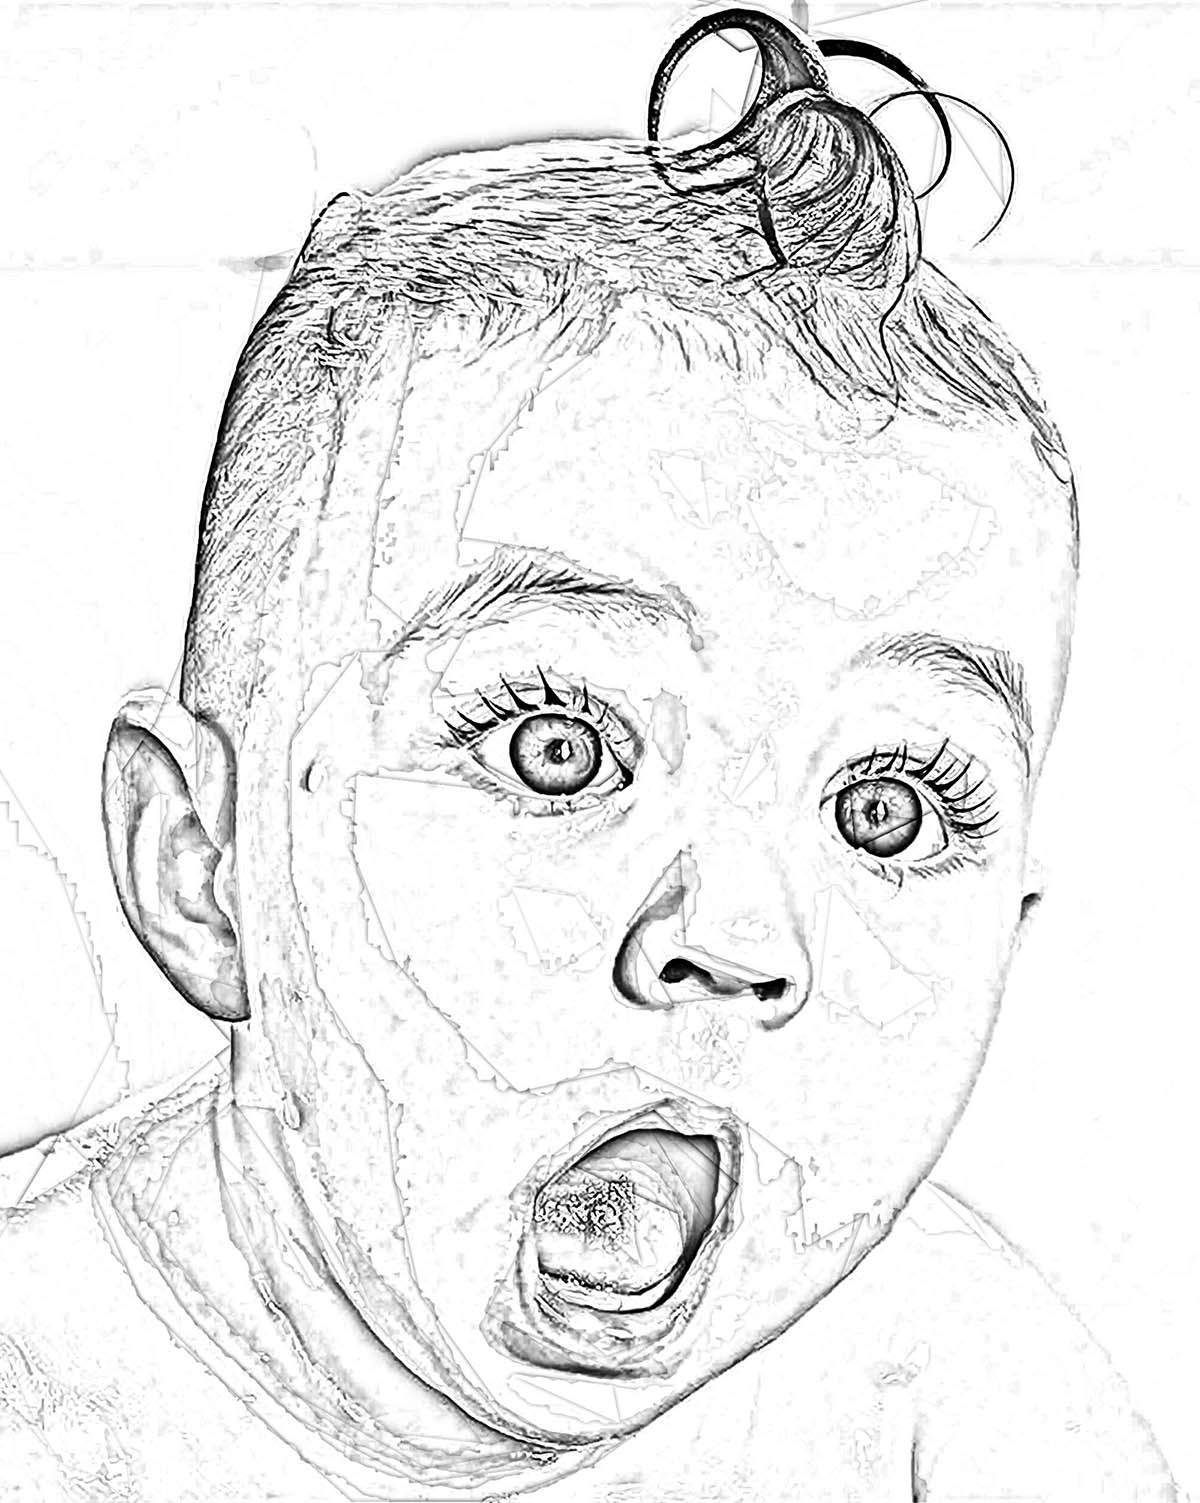 Gif Animated Sketch Photoshop Action Aff Animated Ad Gif Sketch Action Adobe Photoshop Cs6 Comp Sketch Photoshop Animation Sketches Photoshop Actions